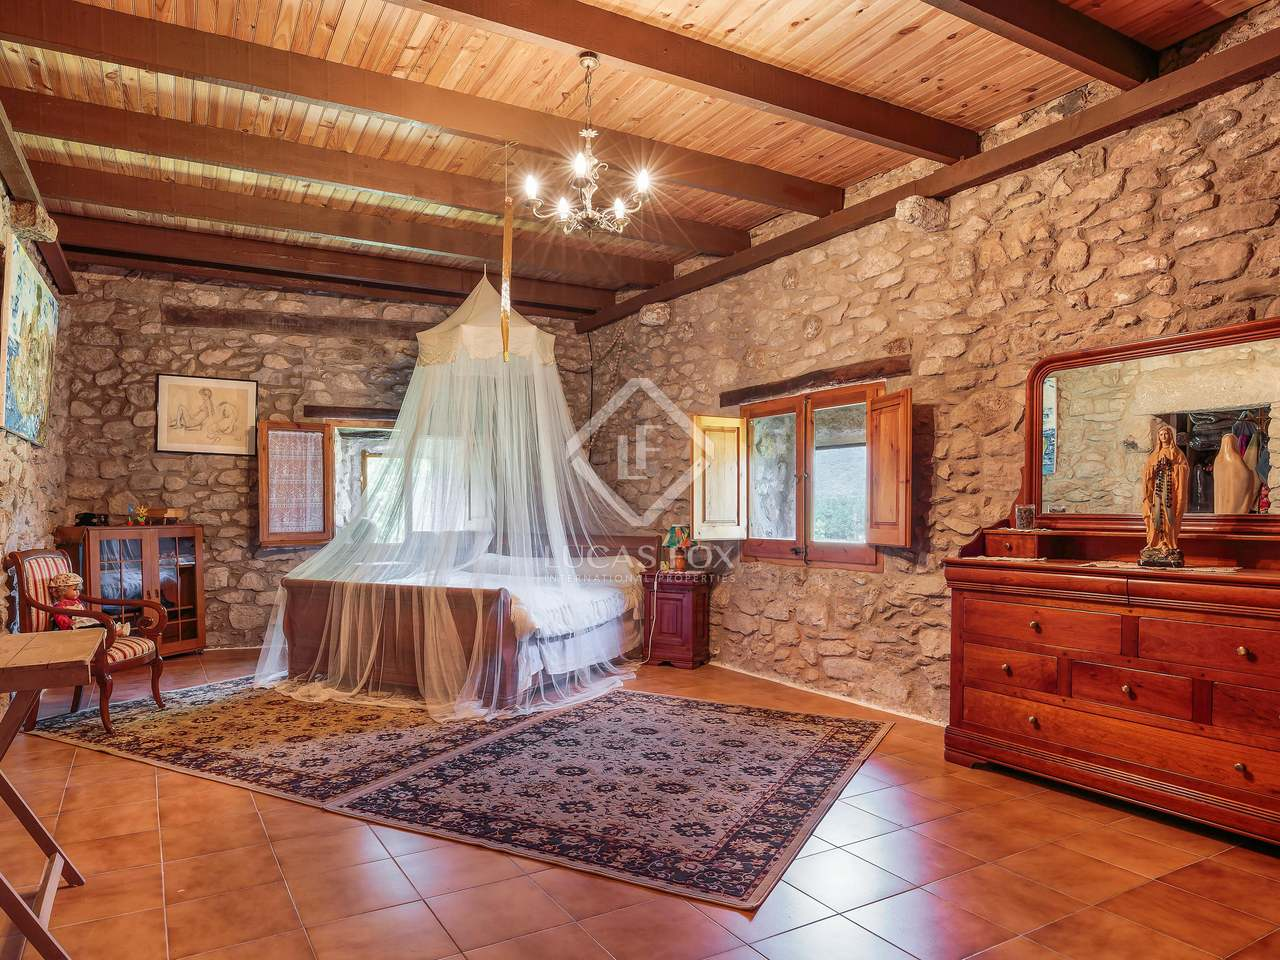 18th Century Farmhouse To Be Renovated For Sale In Girona